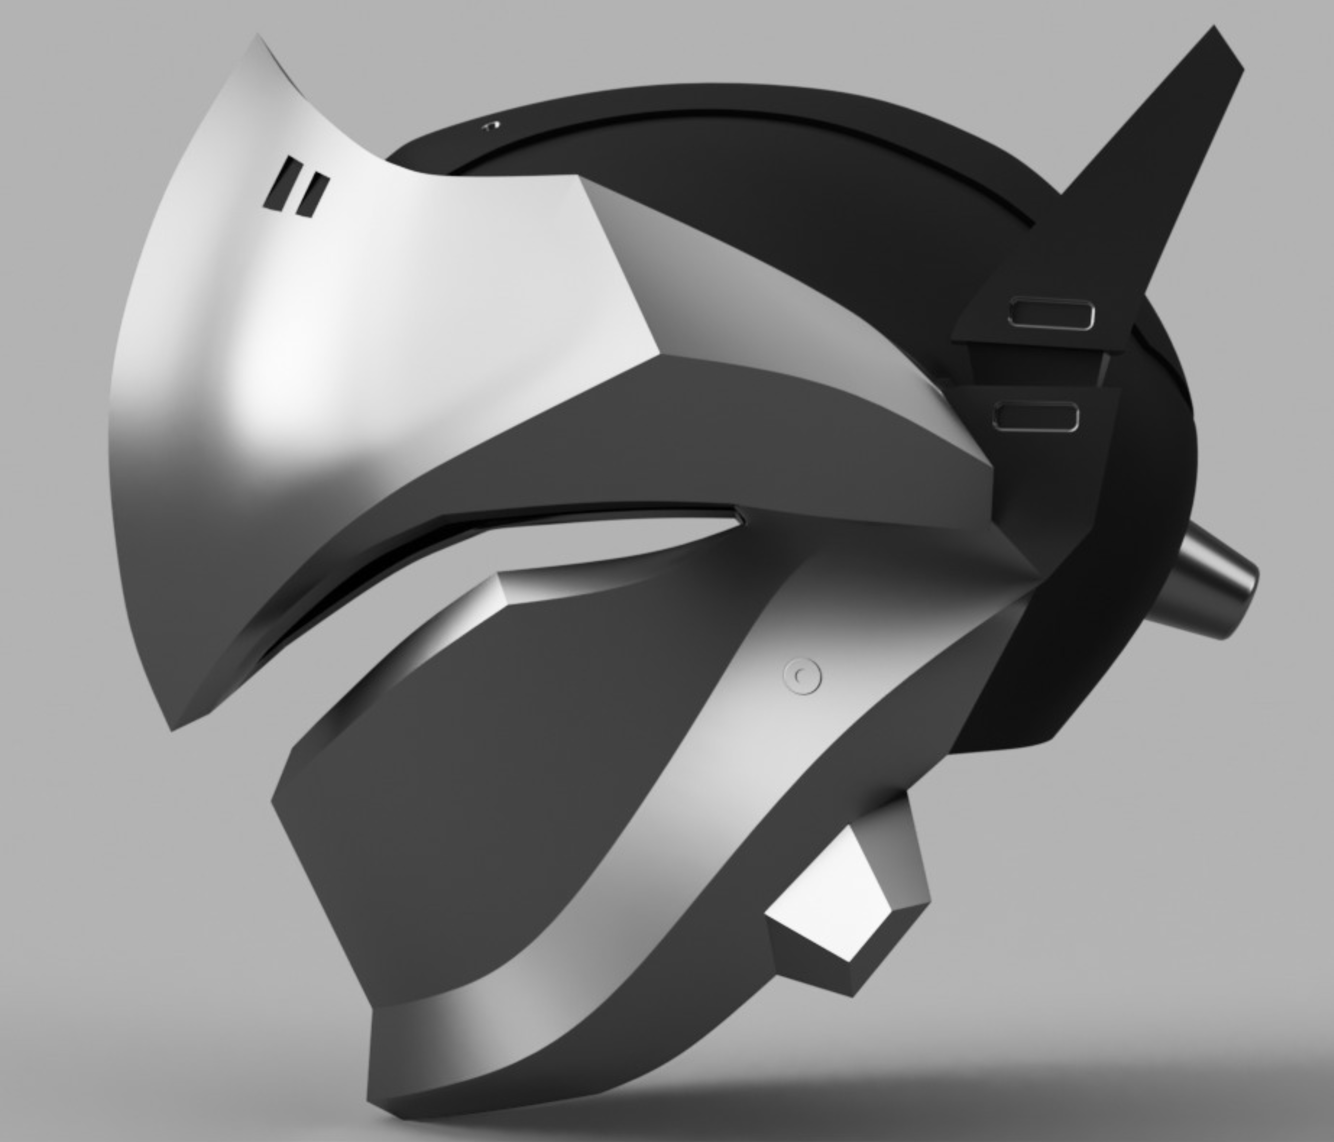 Capture d'écran 2017-09-14 à 17.24.55.png Download free STL file Genji Helmet (Overwatch) • 3D printing template, VillainousPropShop